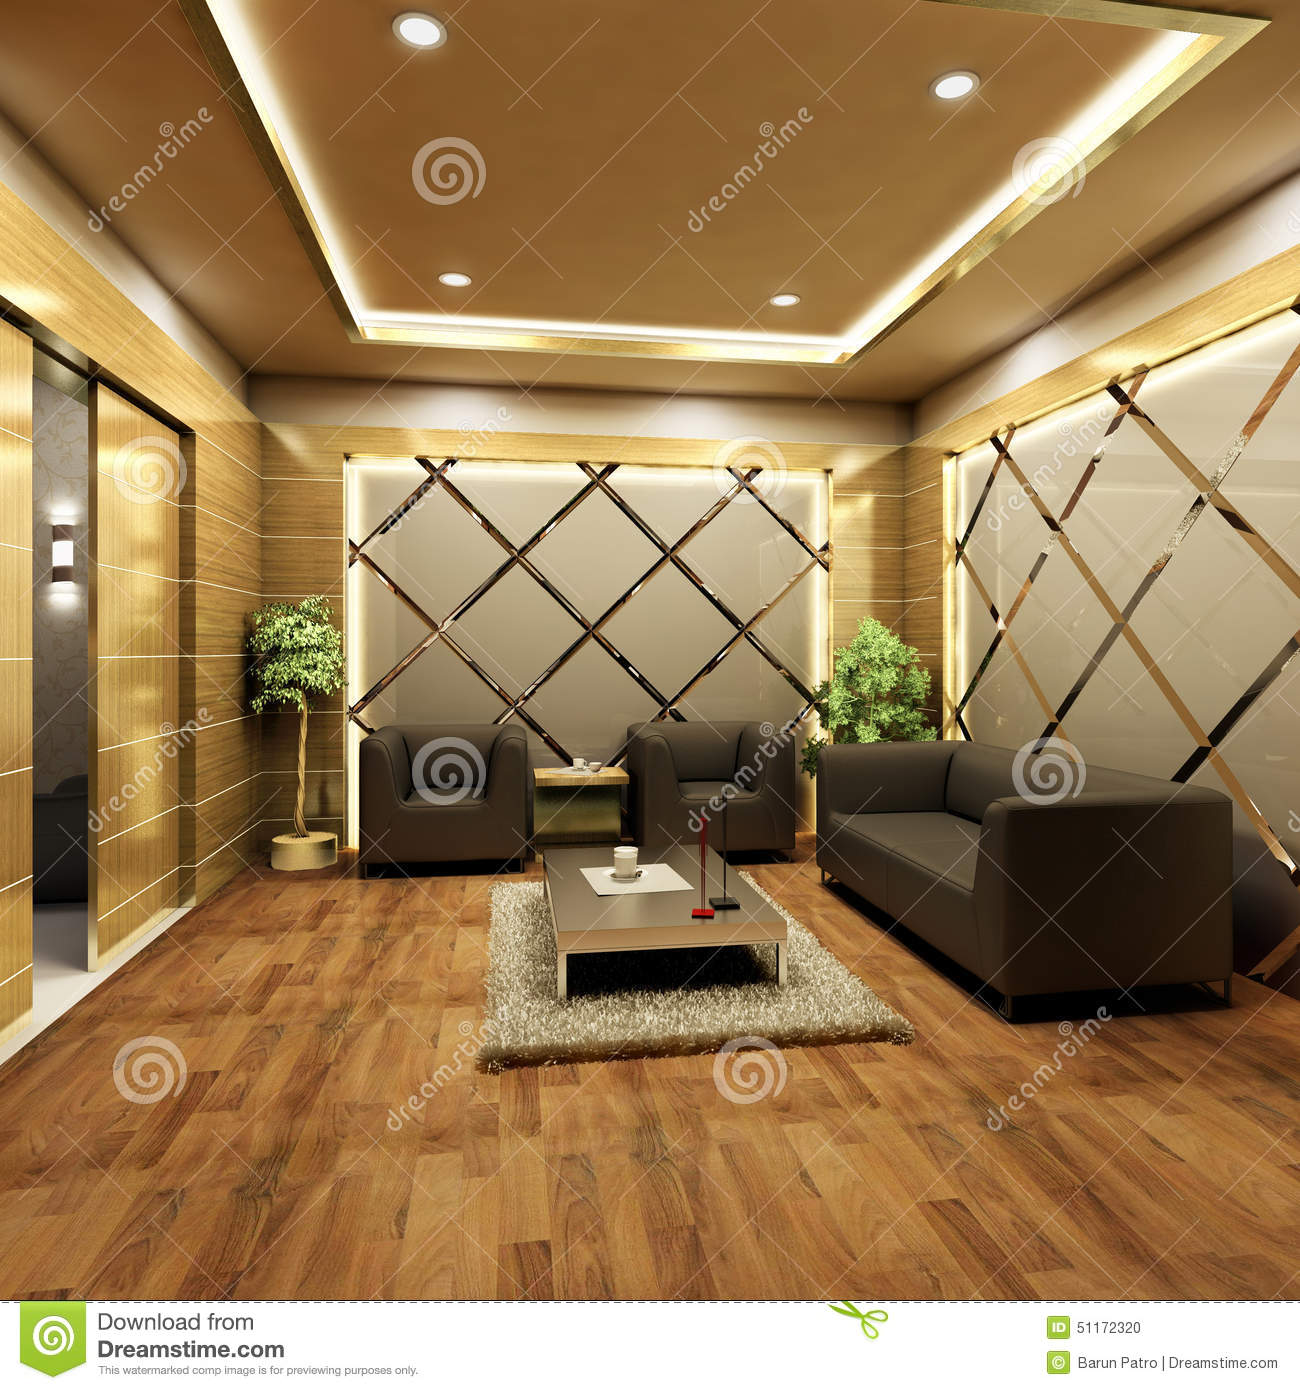 Lobby Interior Design Stock Illustration Illustration Of